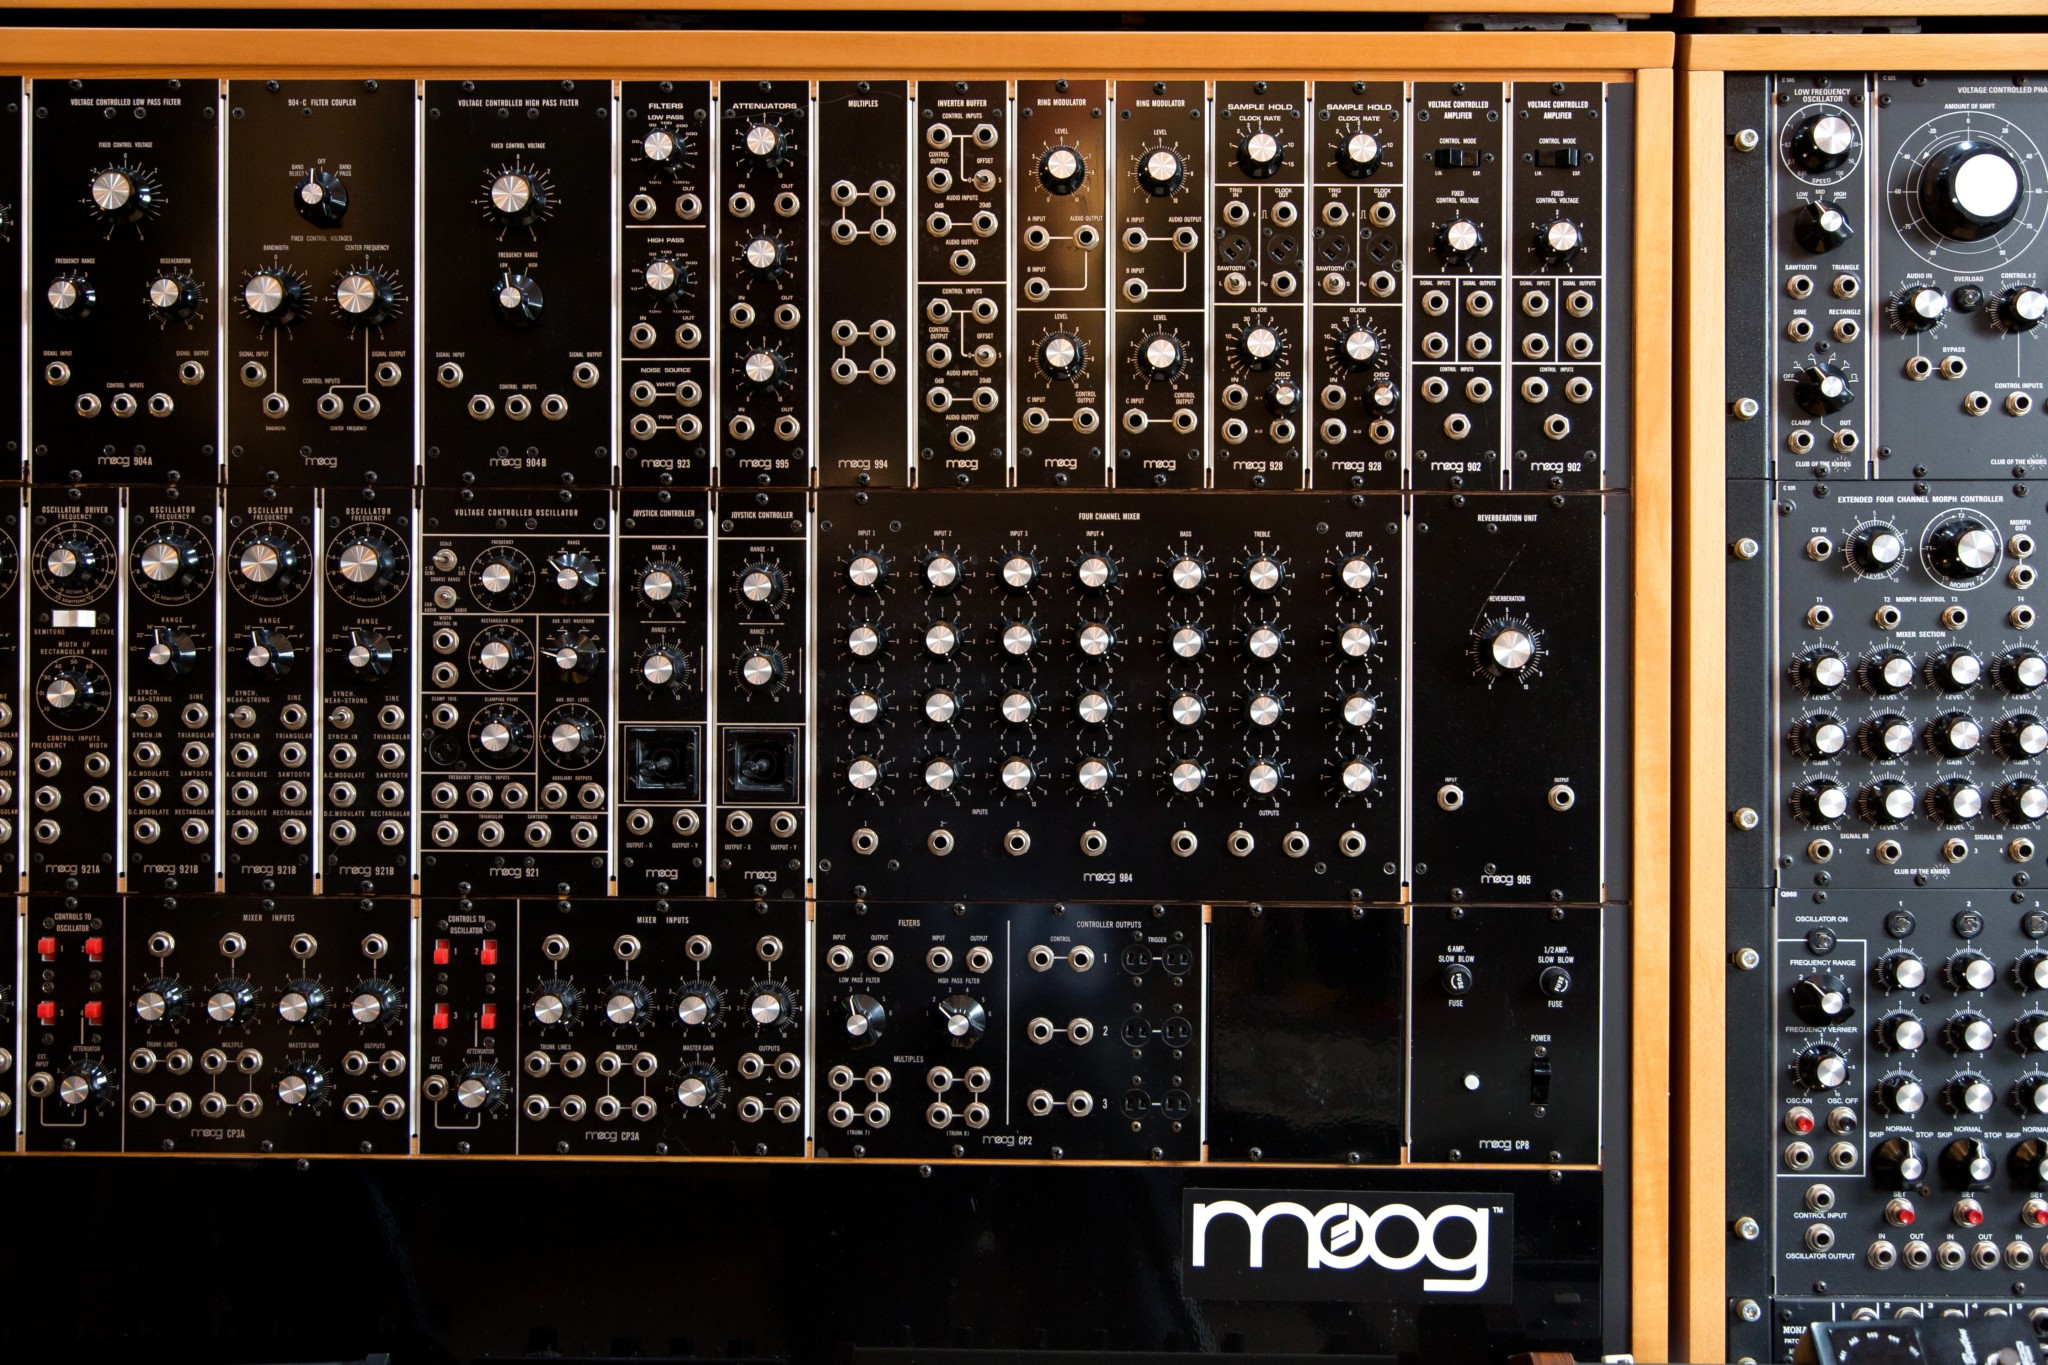 Big Modular Synth 019